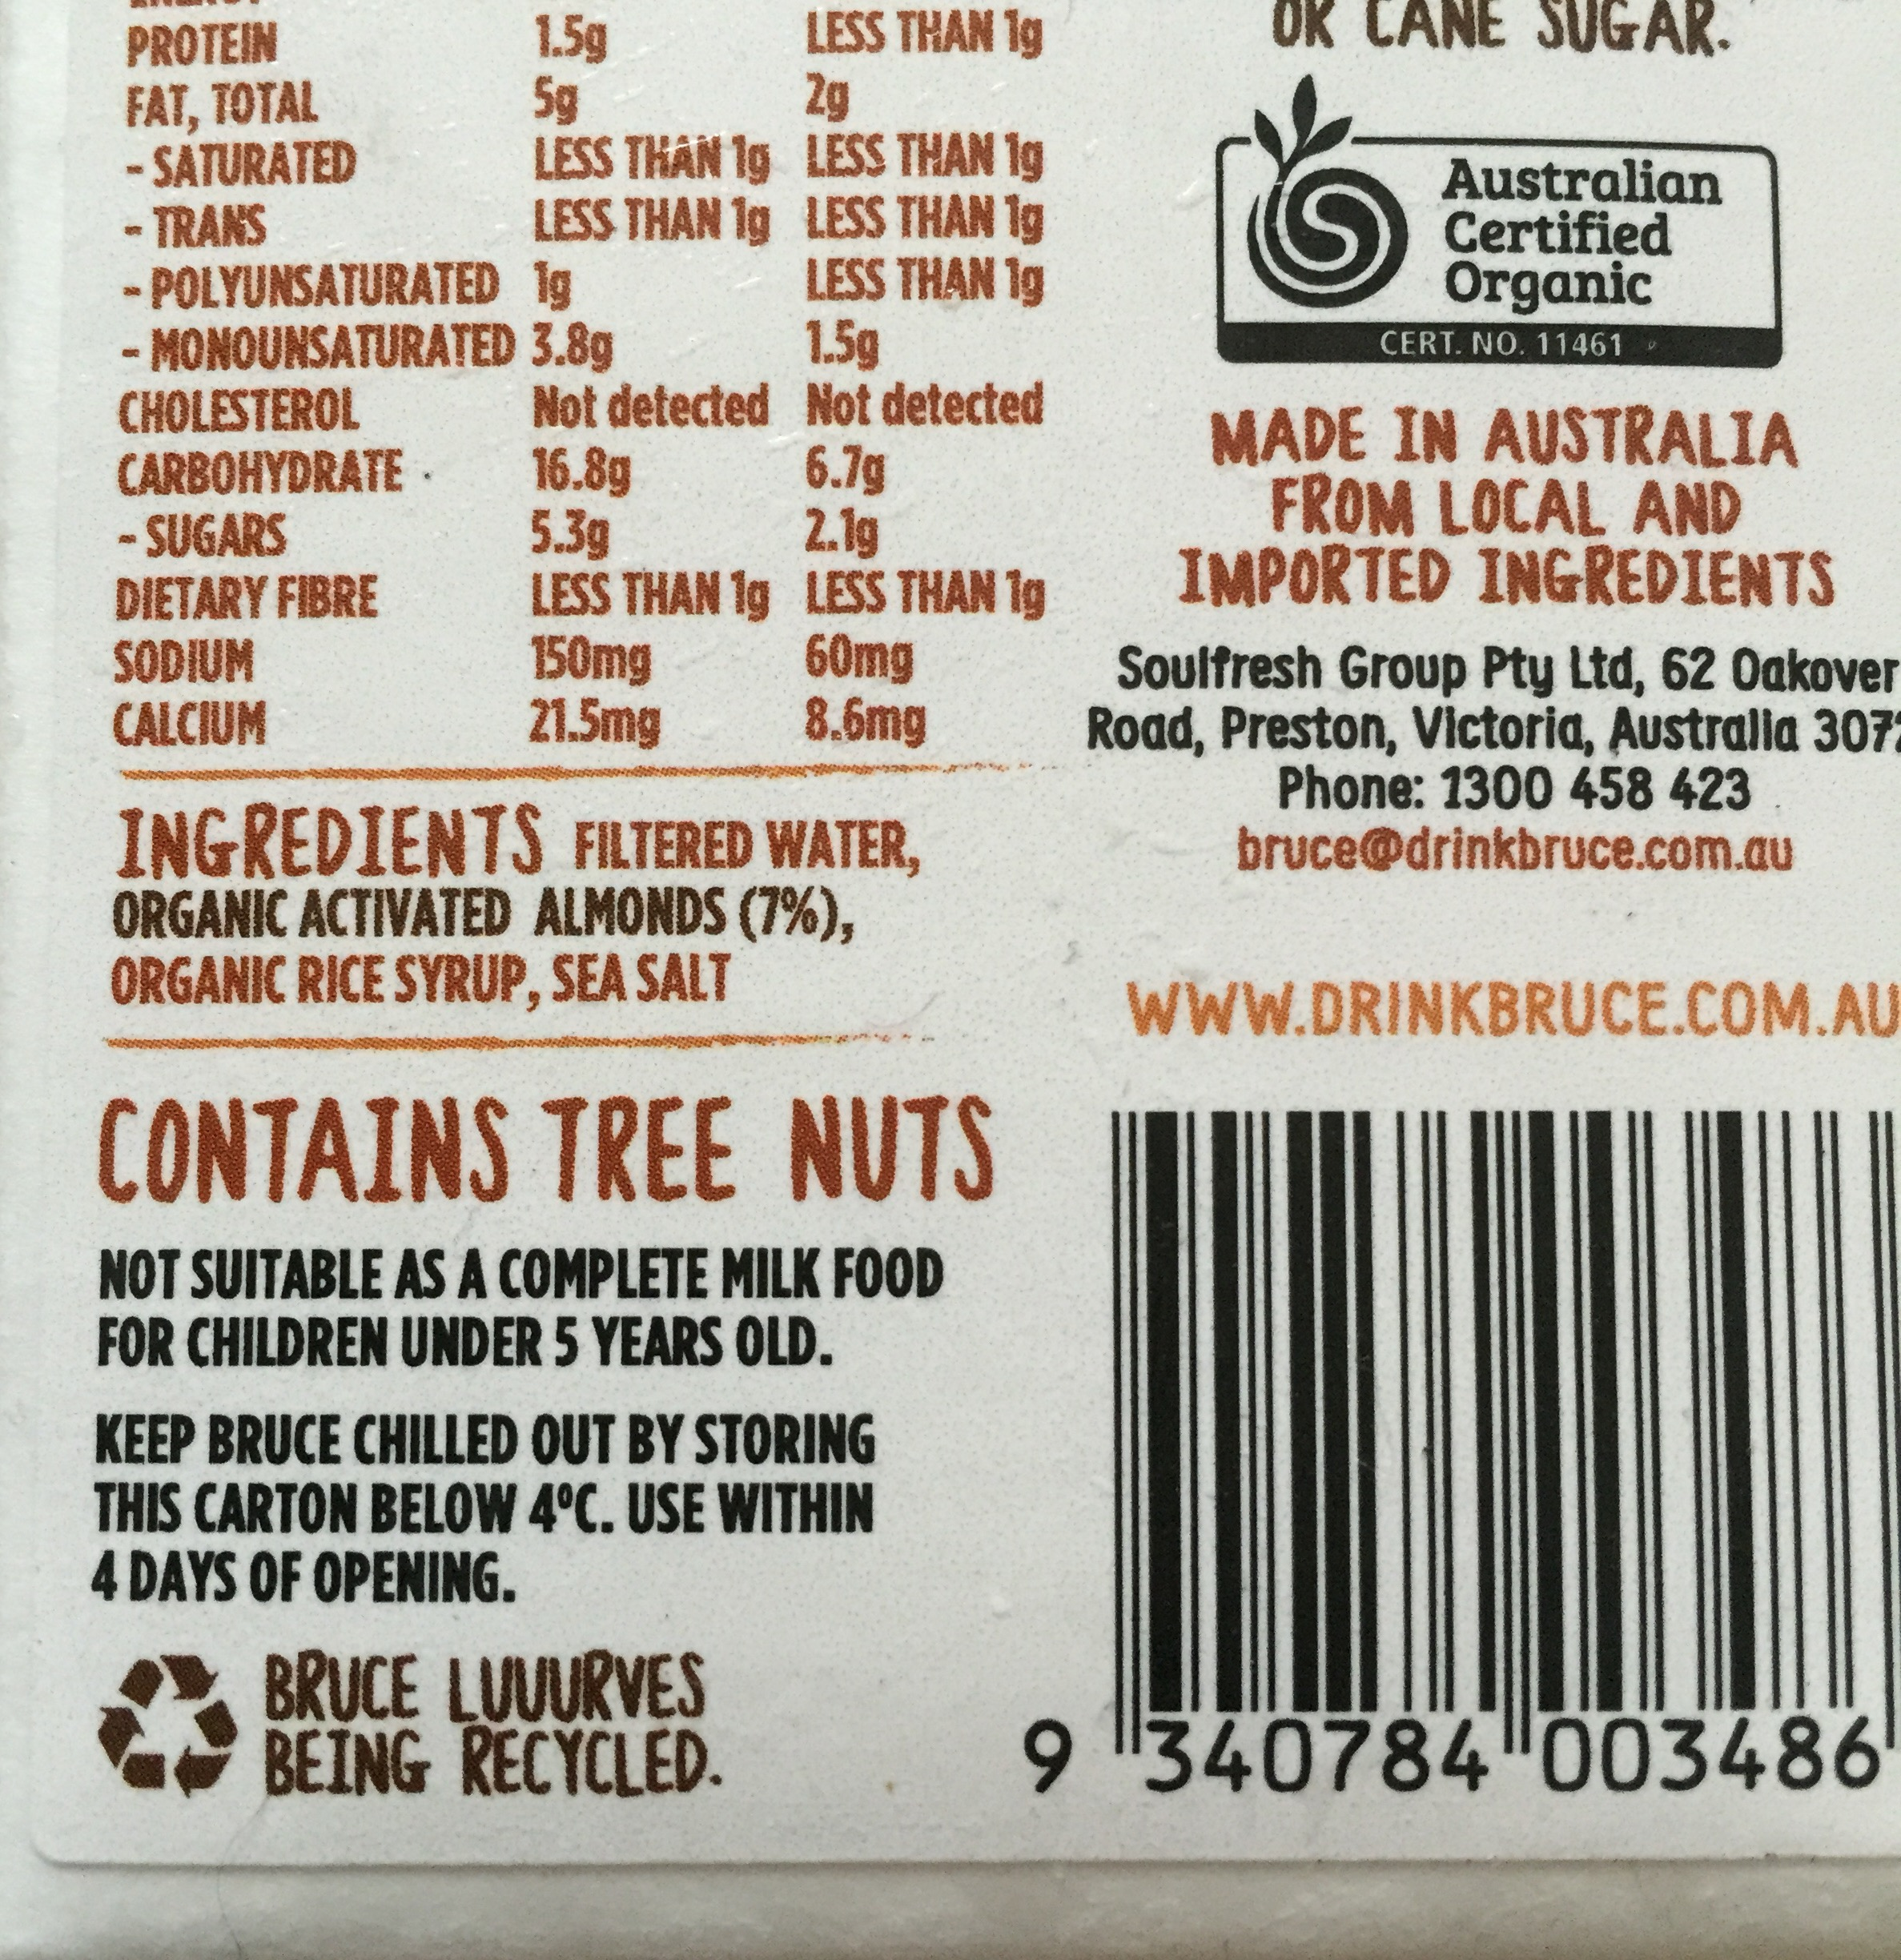 Not all almond milks are created equal - The Tolerant Table